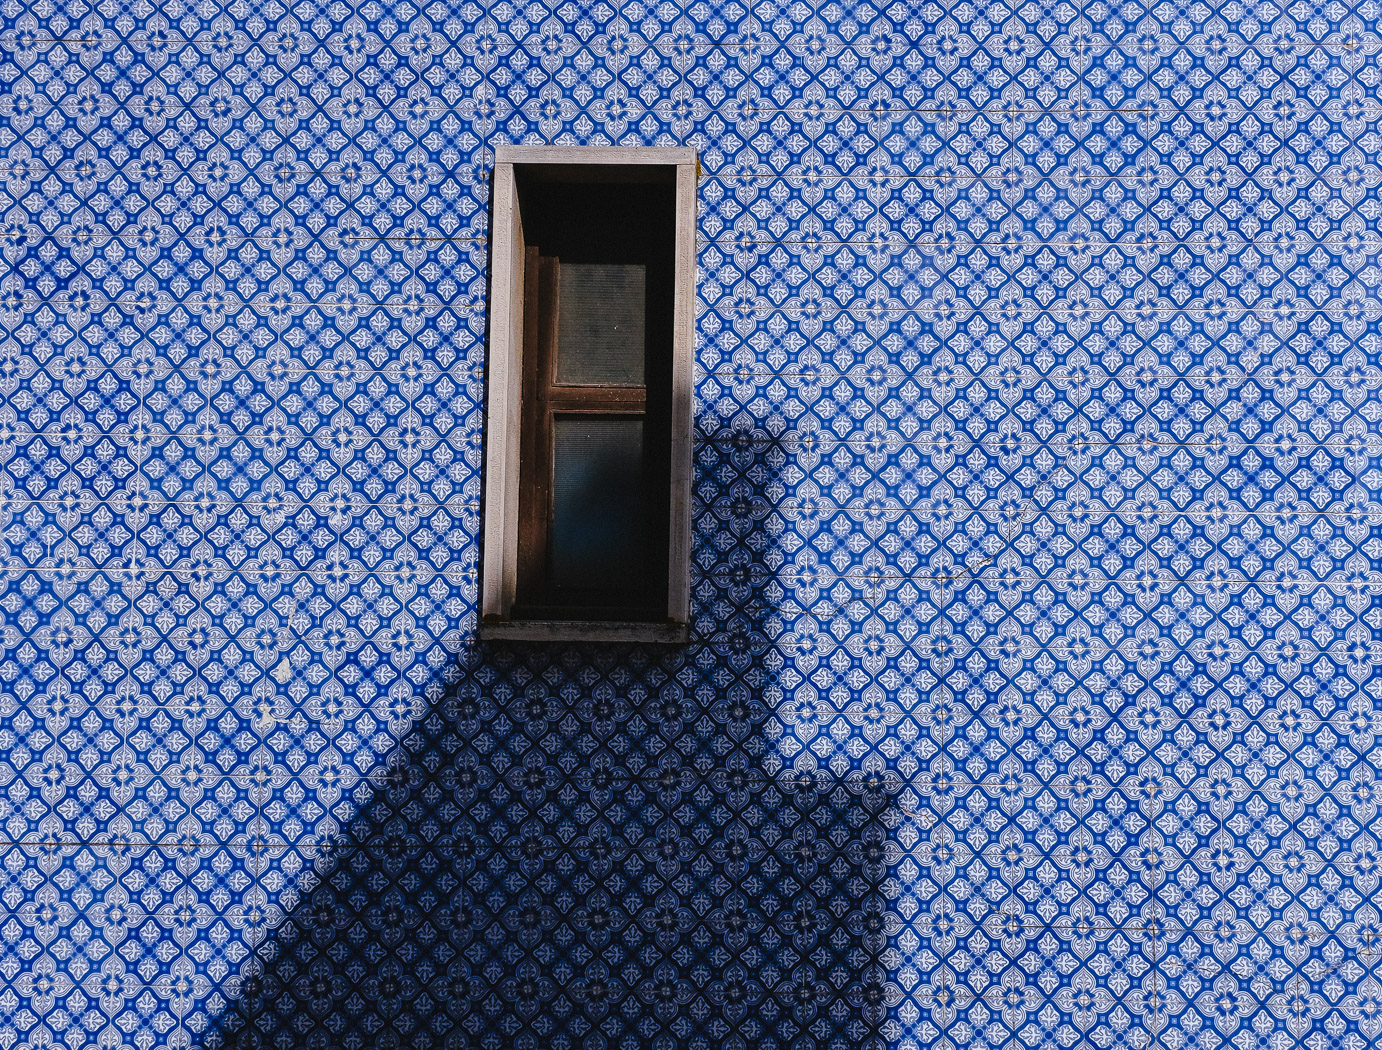 hb images - Aveiro - tile wall with window_